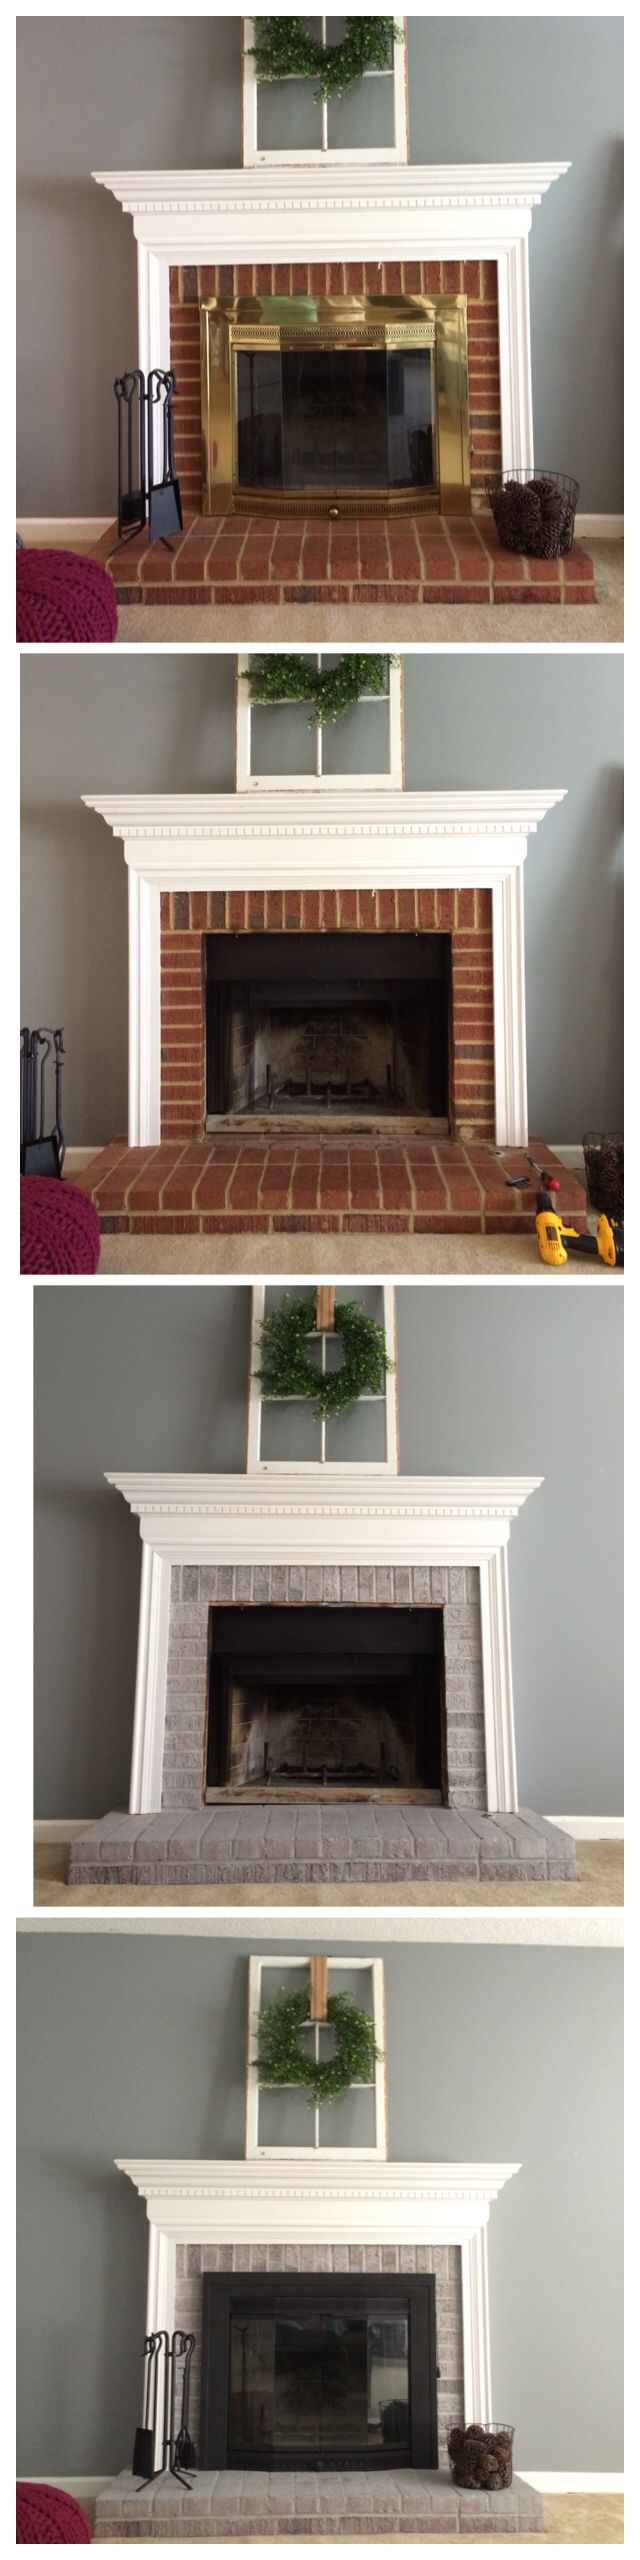 Best 20+ Brass fireplace makeover ideas on Pinterest | Paint ...